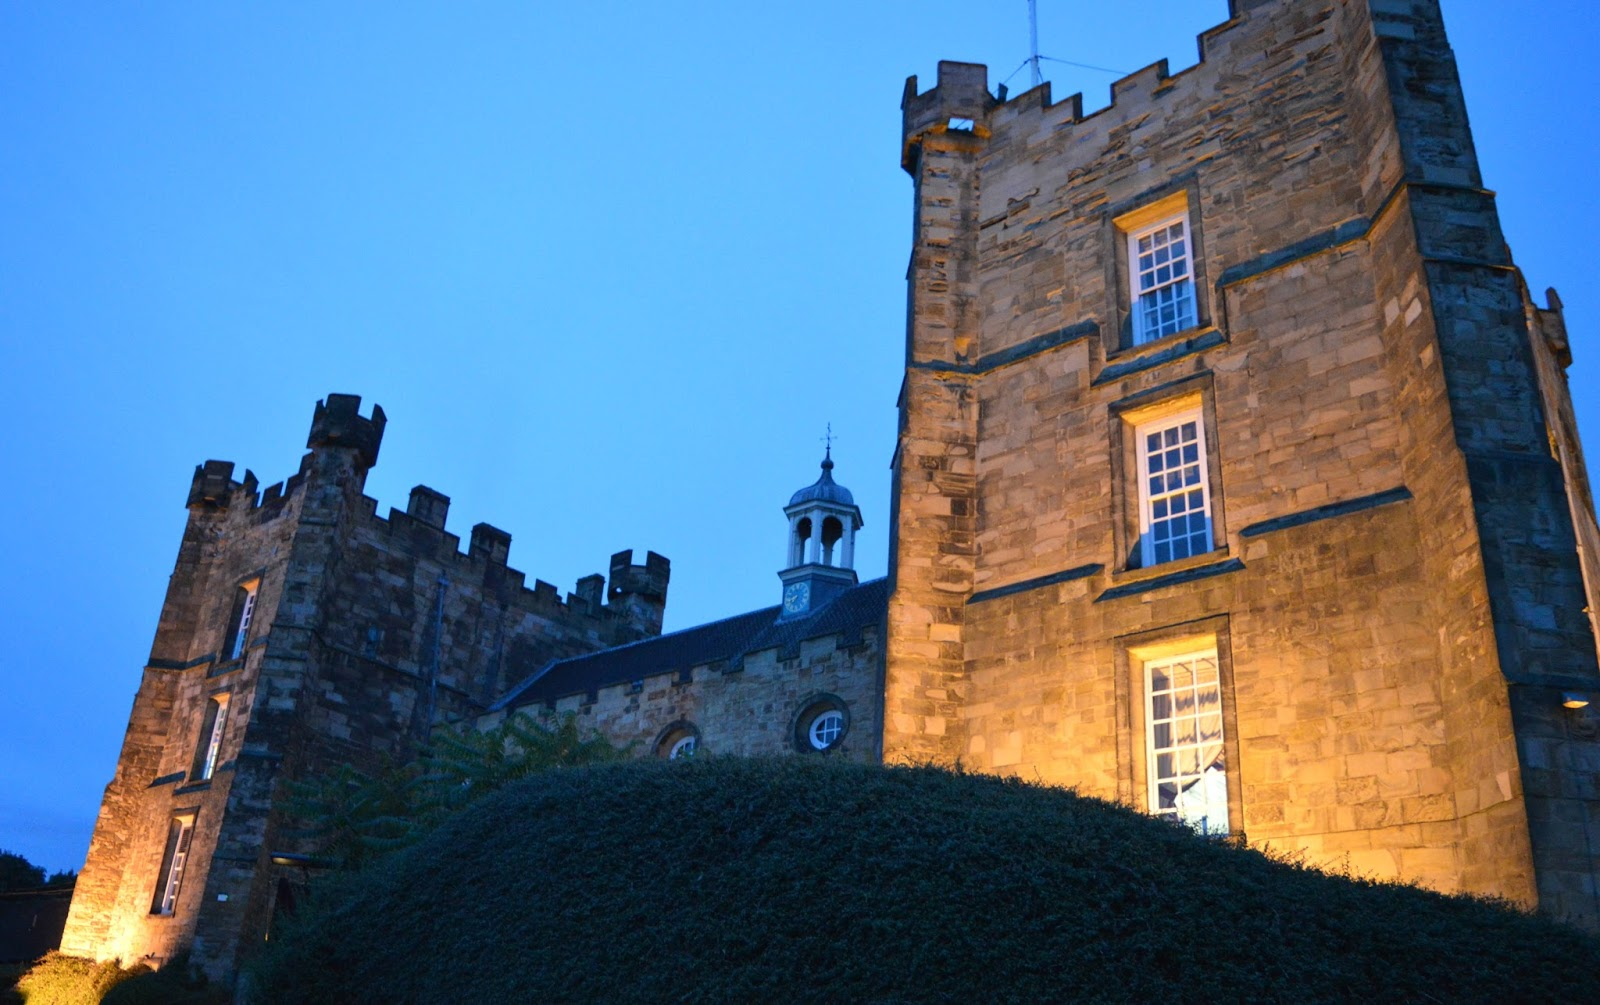 The Best Halloween Events for Adults in the North East - Lumley Castle